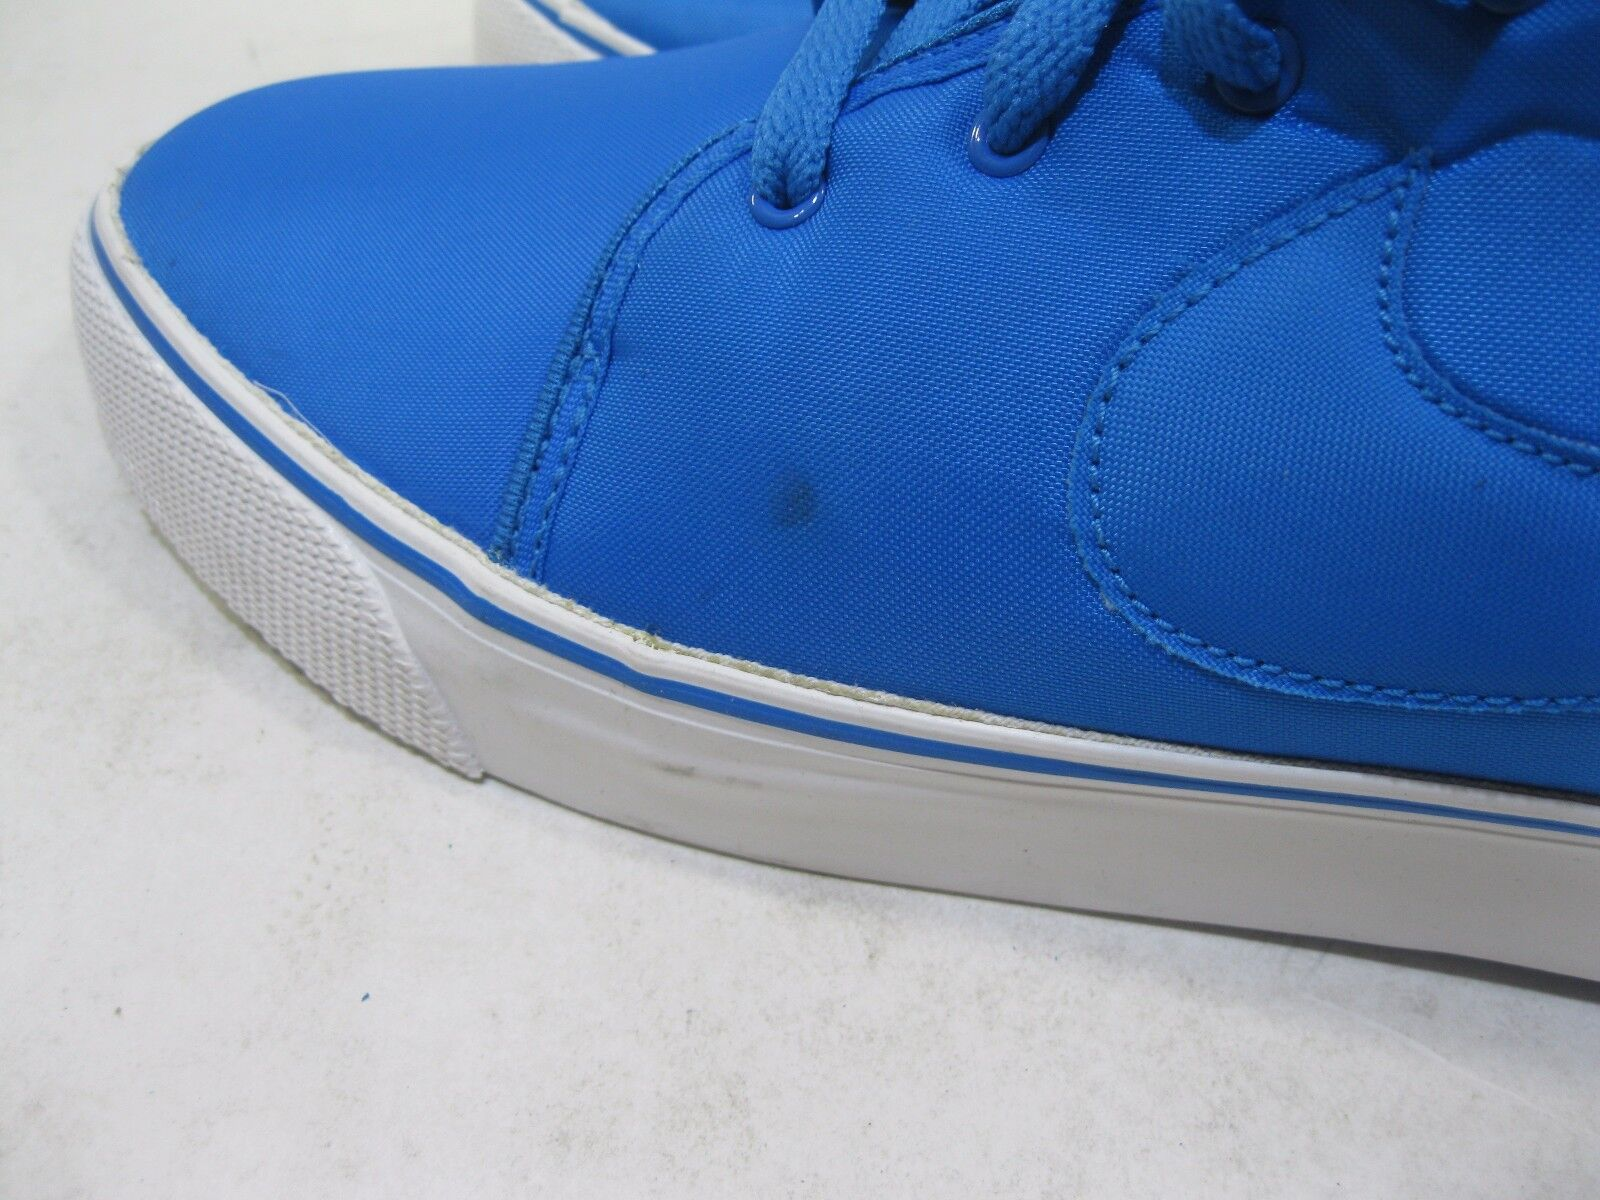 size 40 353af 0f55c ... Nike Toki Mens Sneakers In Pilot Blue Summit White 385444-403 Size 11.5  фото ...